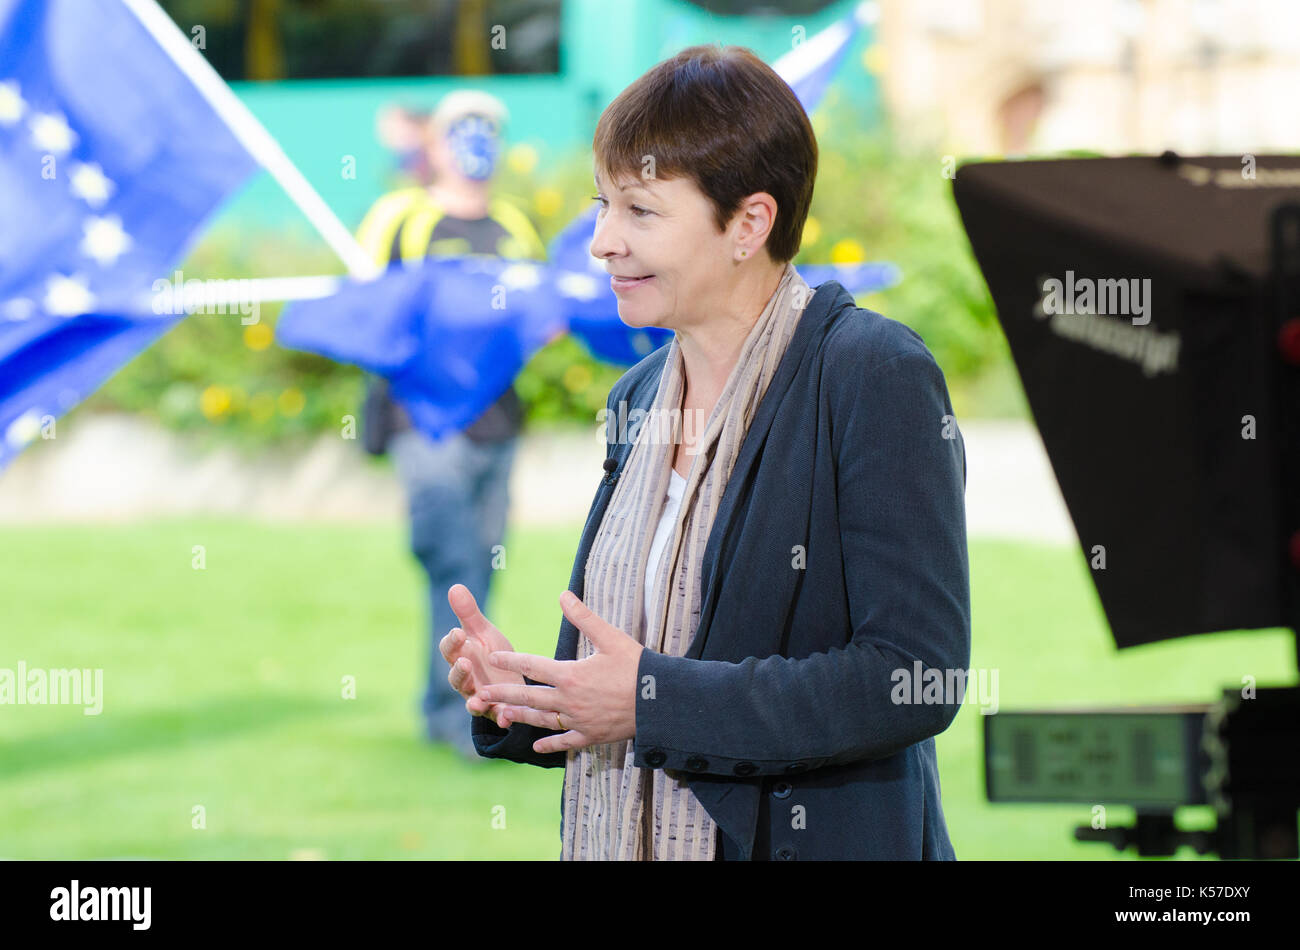 Caroline Lucas MP (Green: Brighton Pavilion and Co-Leader) interviewed on College Green, Westminster, as Parliament debates the EU Withdrawal Bill (Se - Stock Image